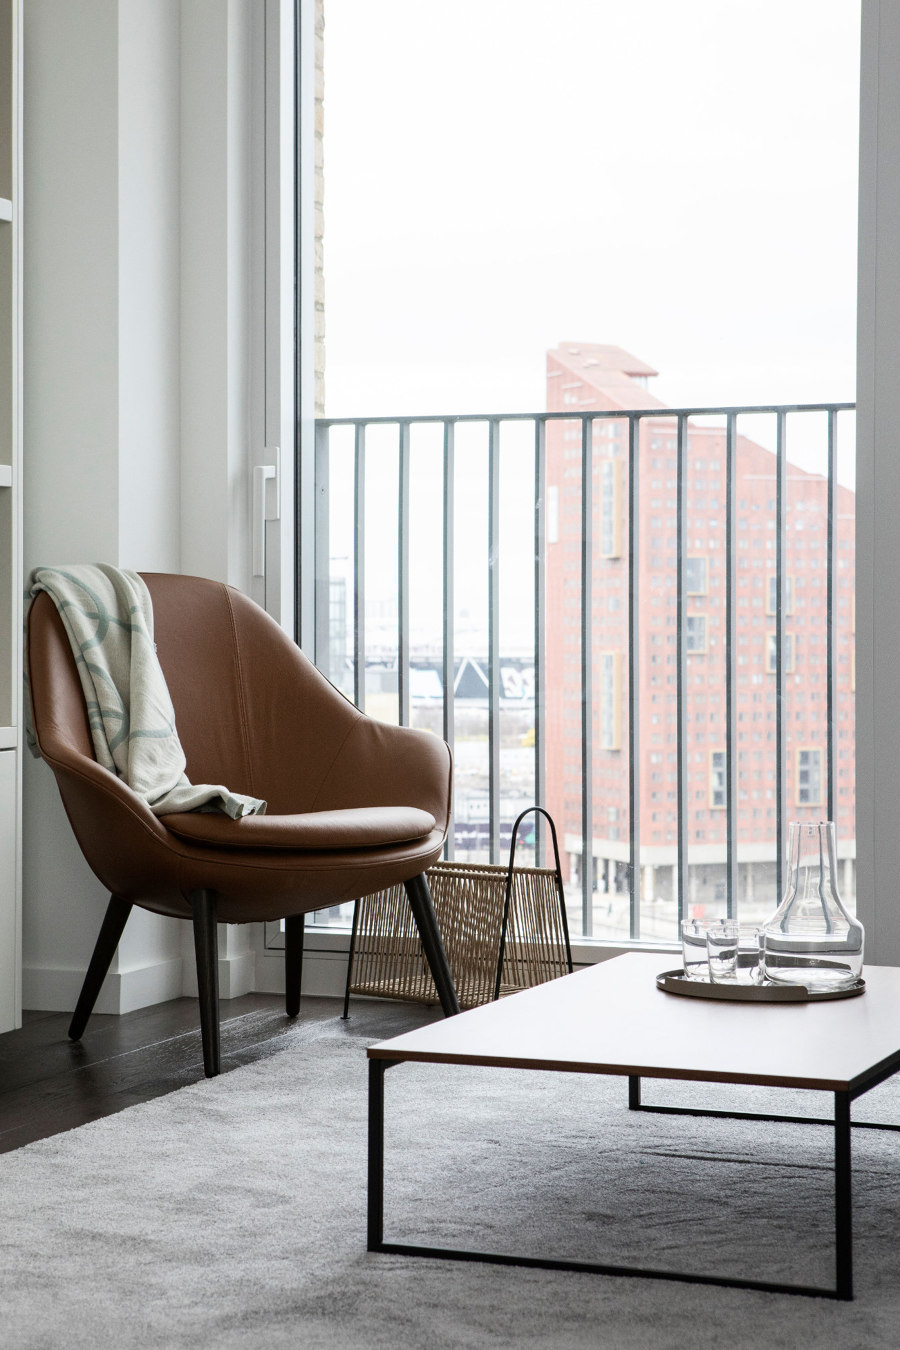 Contract for the people: BOCONCEPT | News